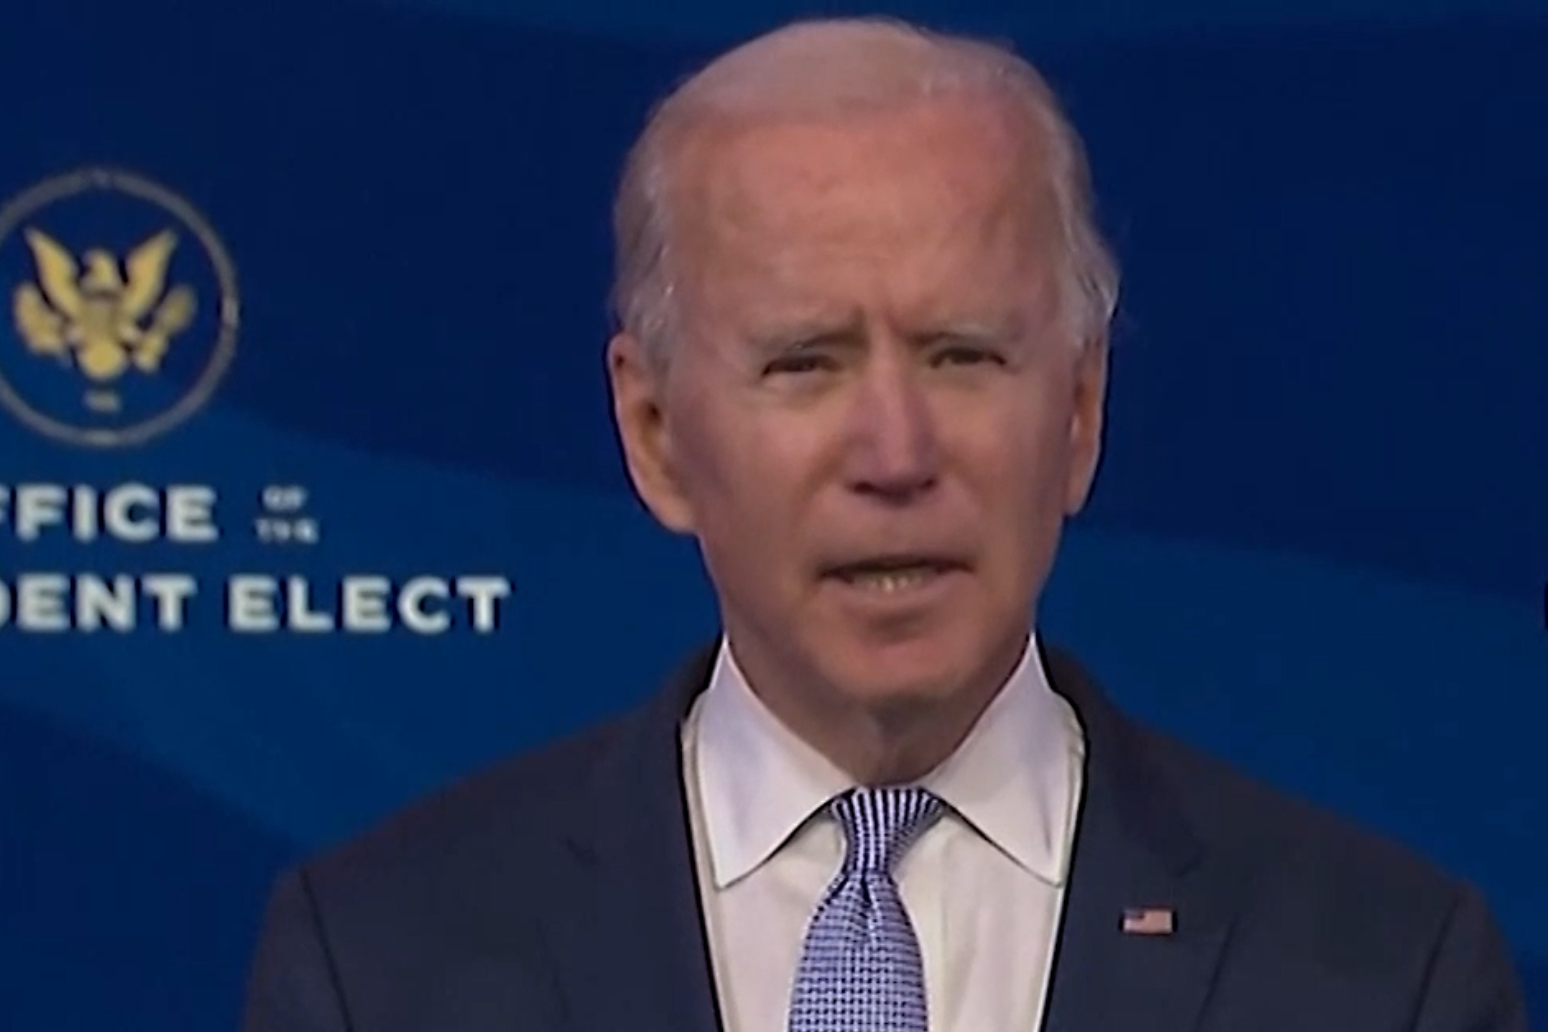 Congress validates Joe Biden's presidential victory